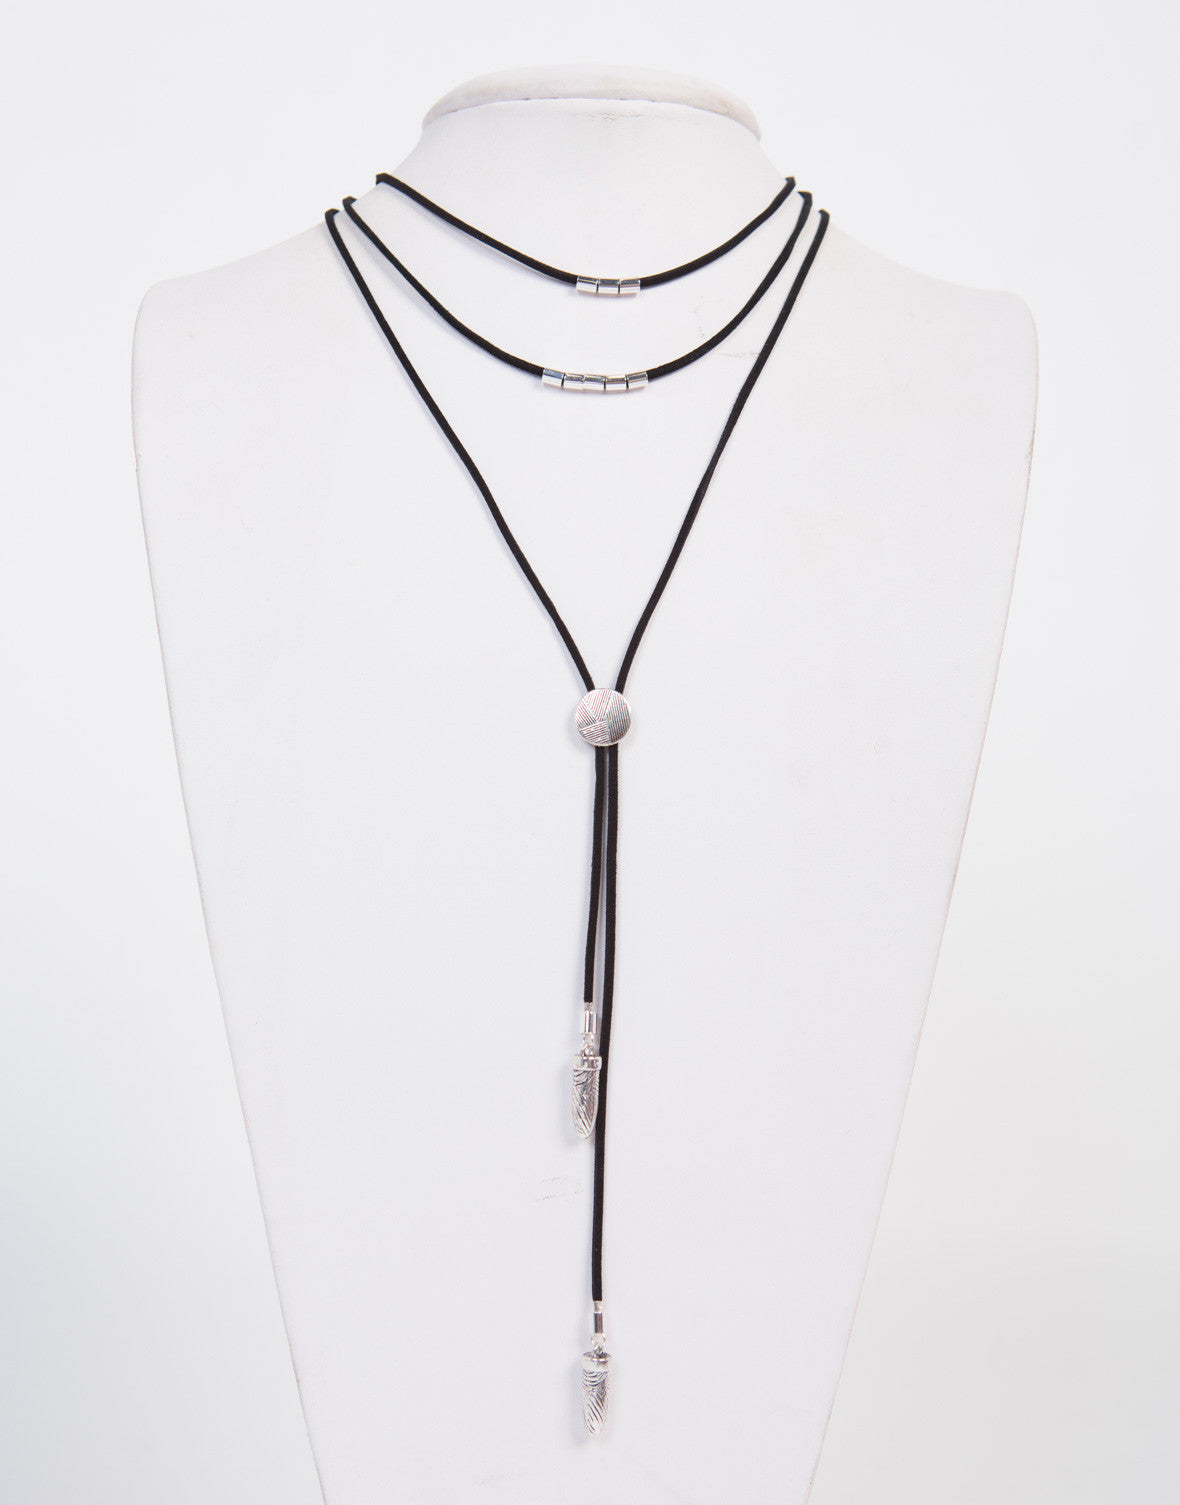 Layered Silver Charms Necklace